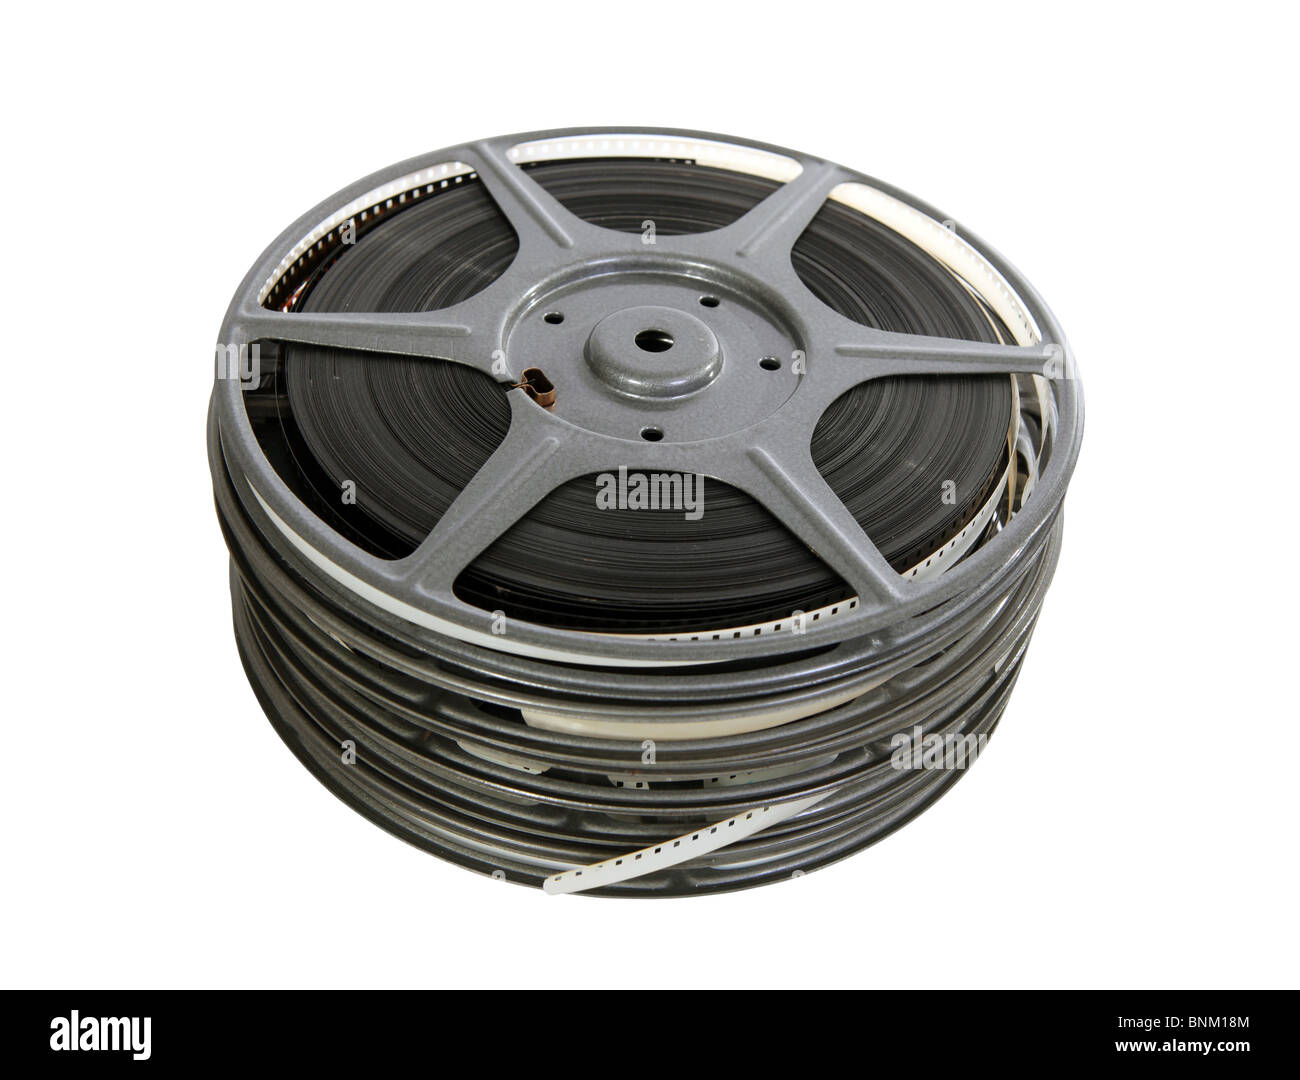 Old 8mm film reels with white leader. - Stock Image